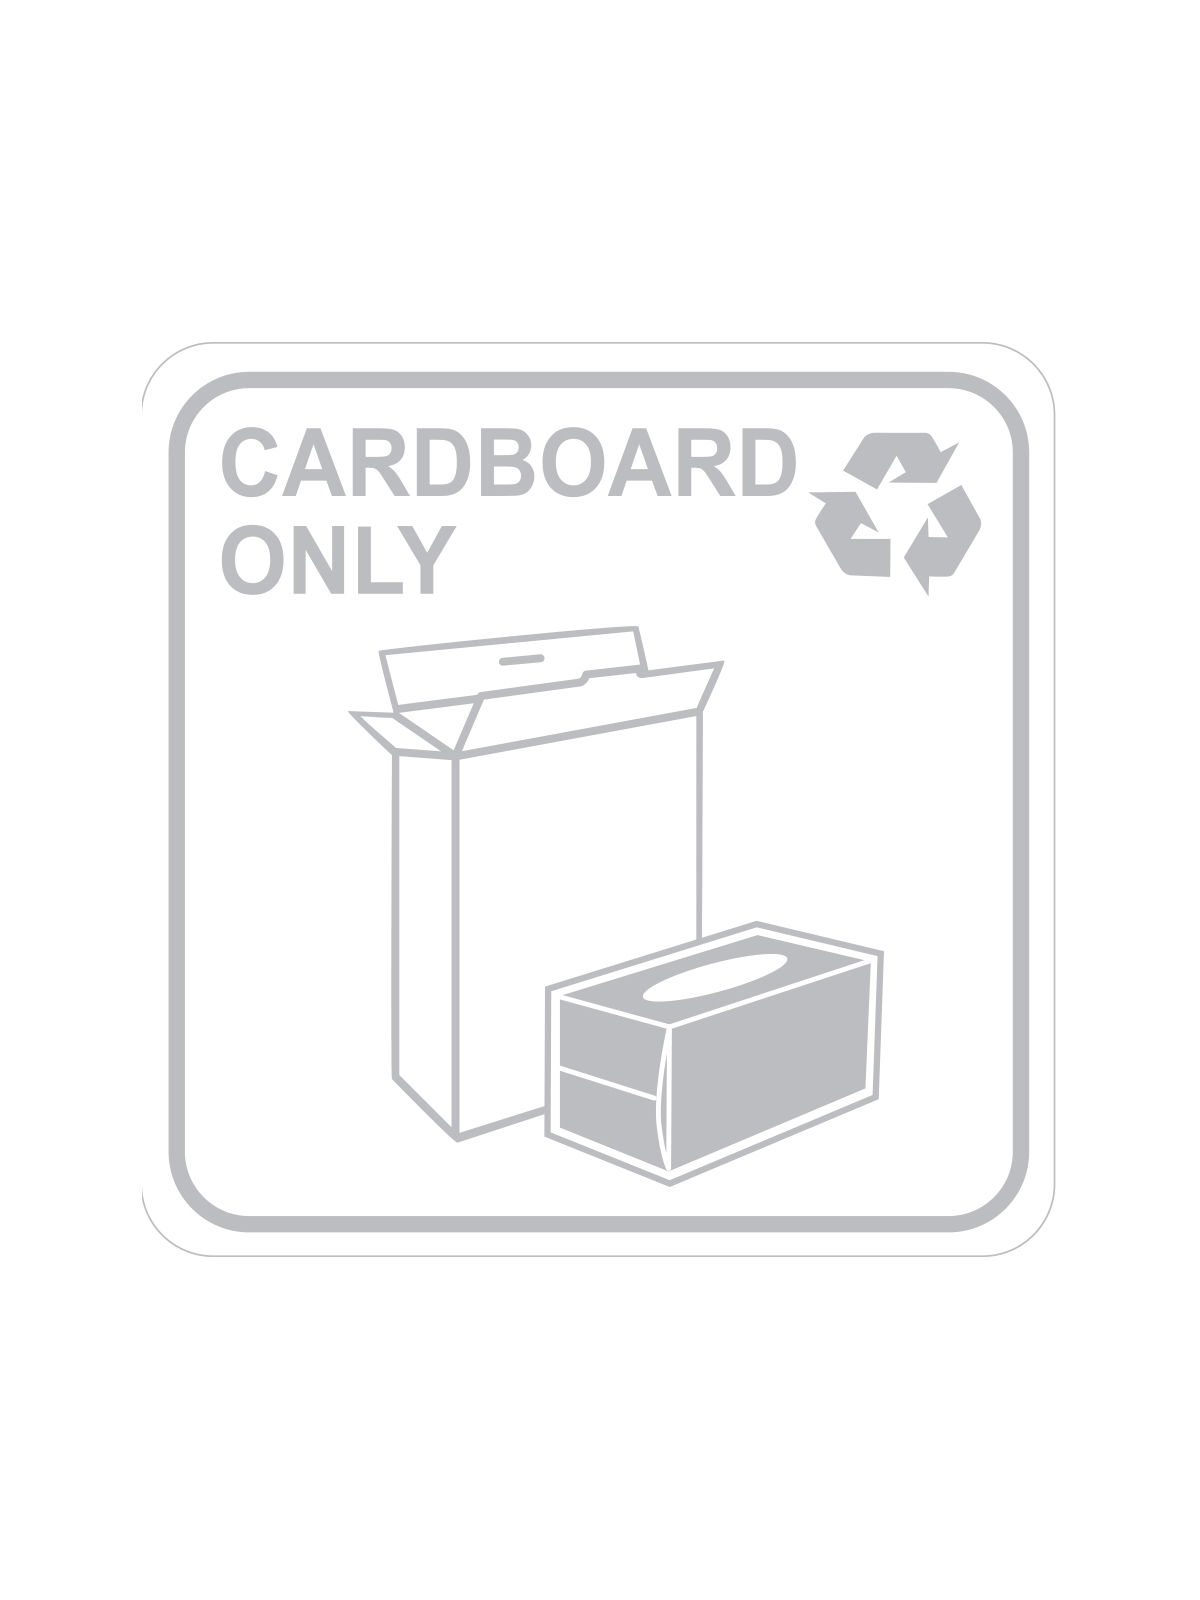 SQUARE LABEL CARDBOARD ONLY